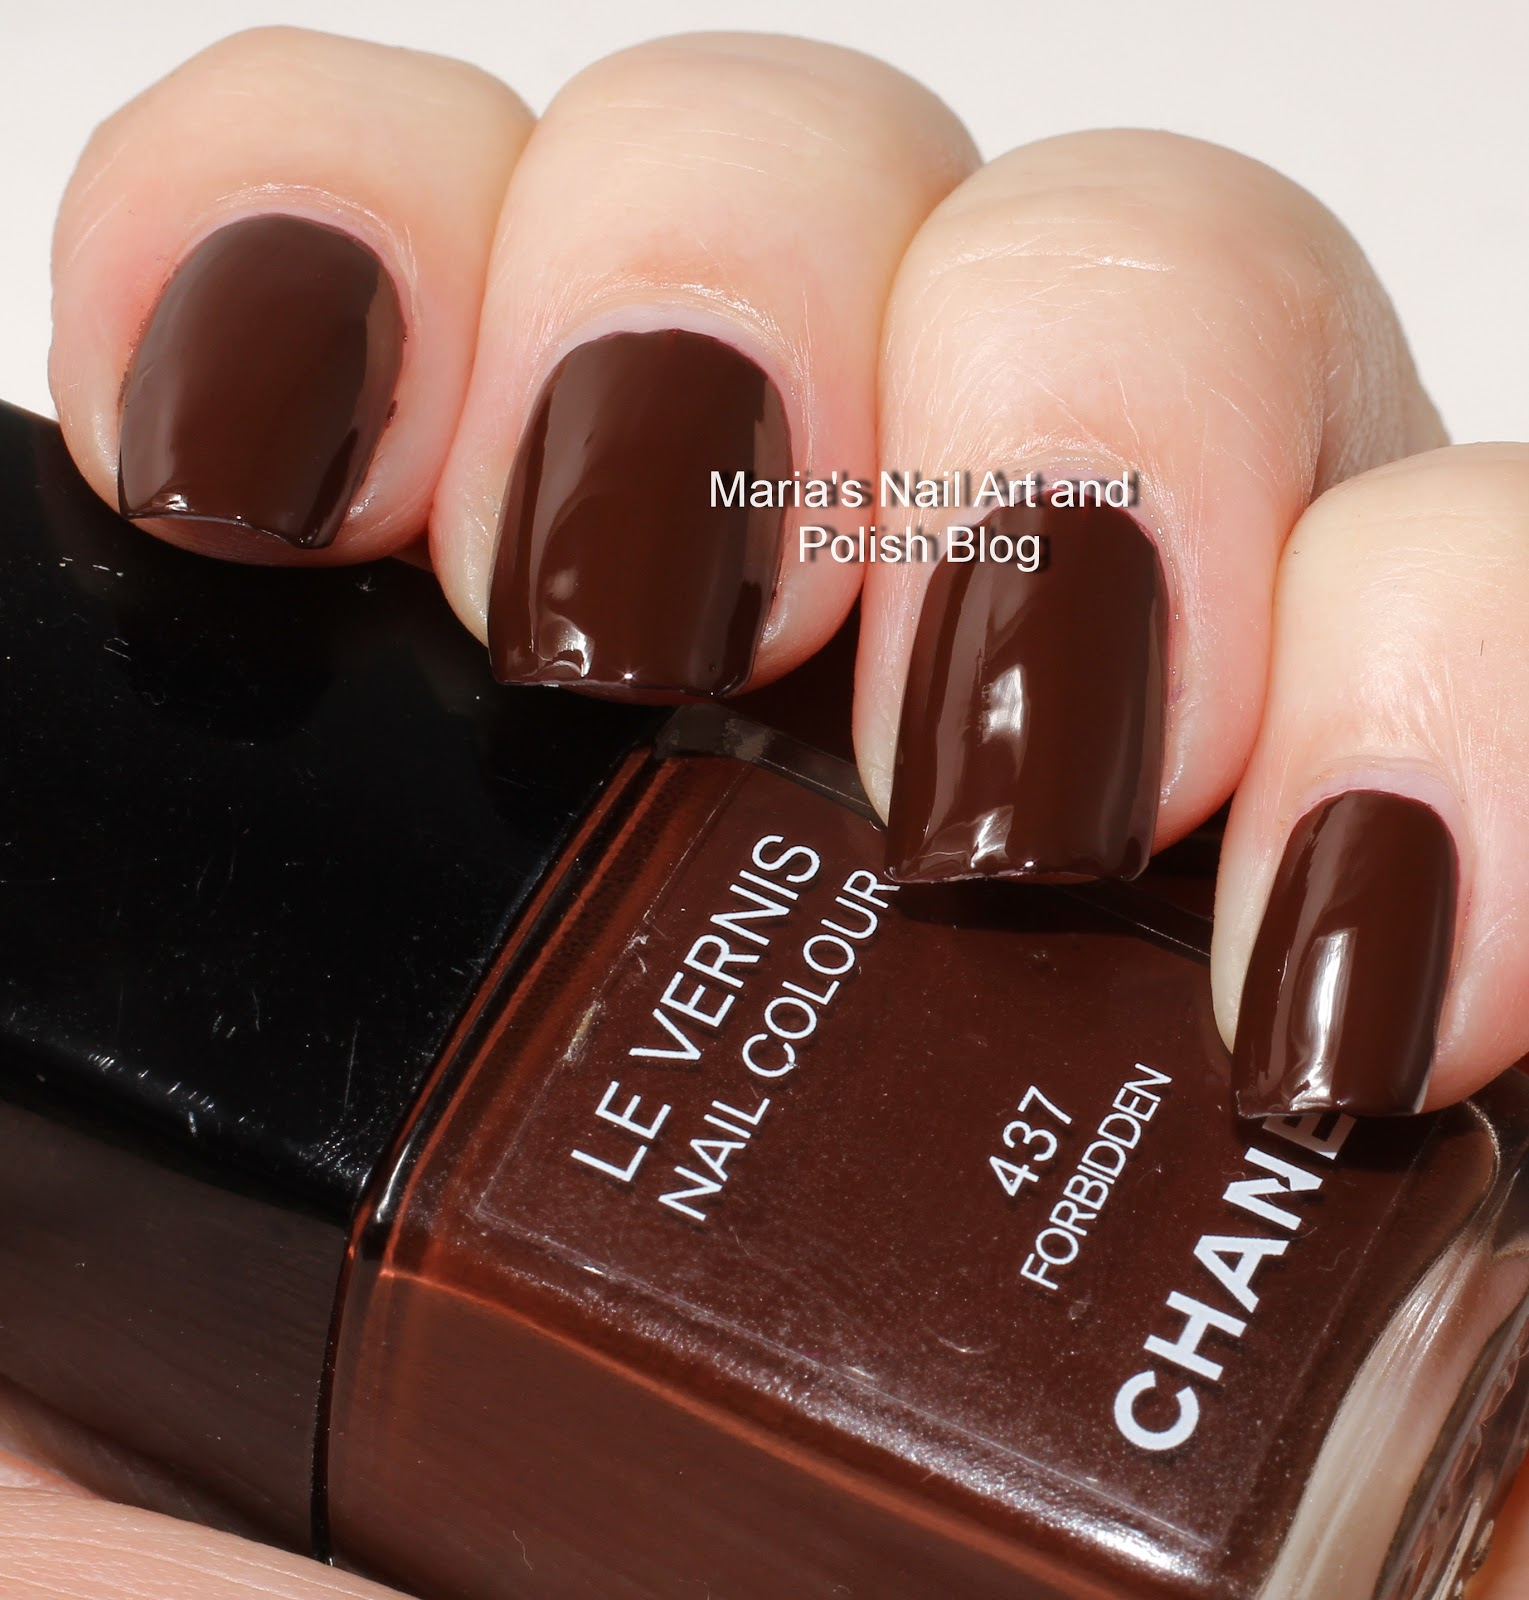 Marias Nail Art And Polish Blog Flushed With Stripes And: Marias Nail Art And Polish Blog: Chanel Forbidden Noirs